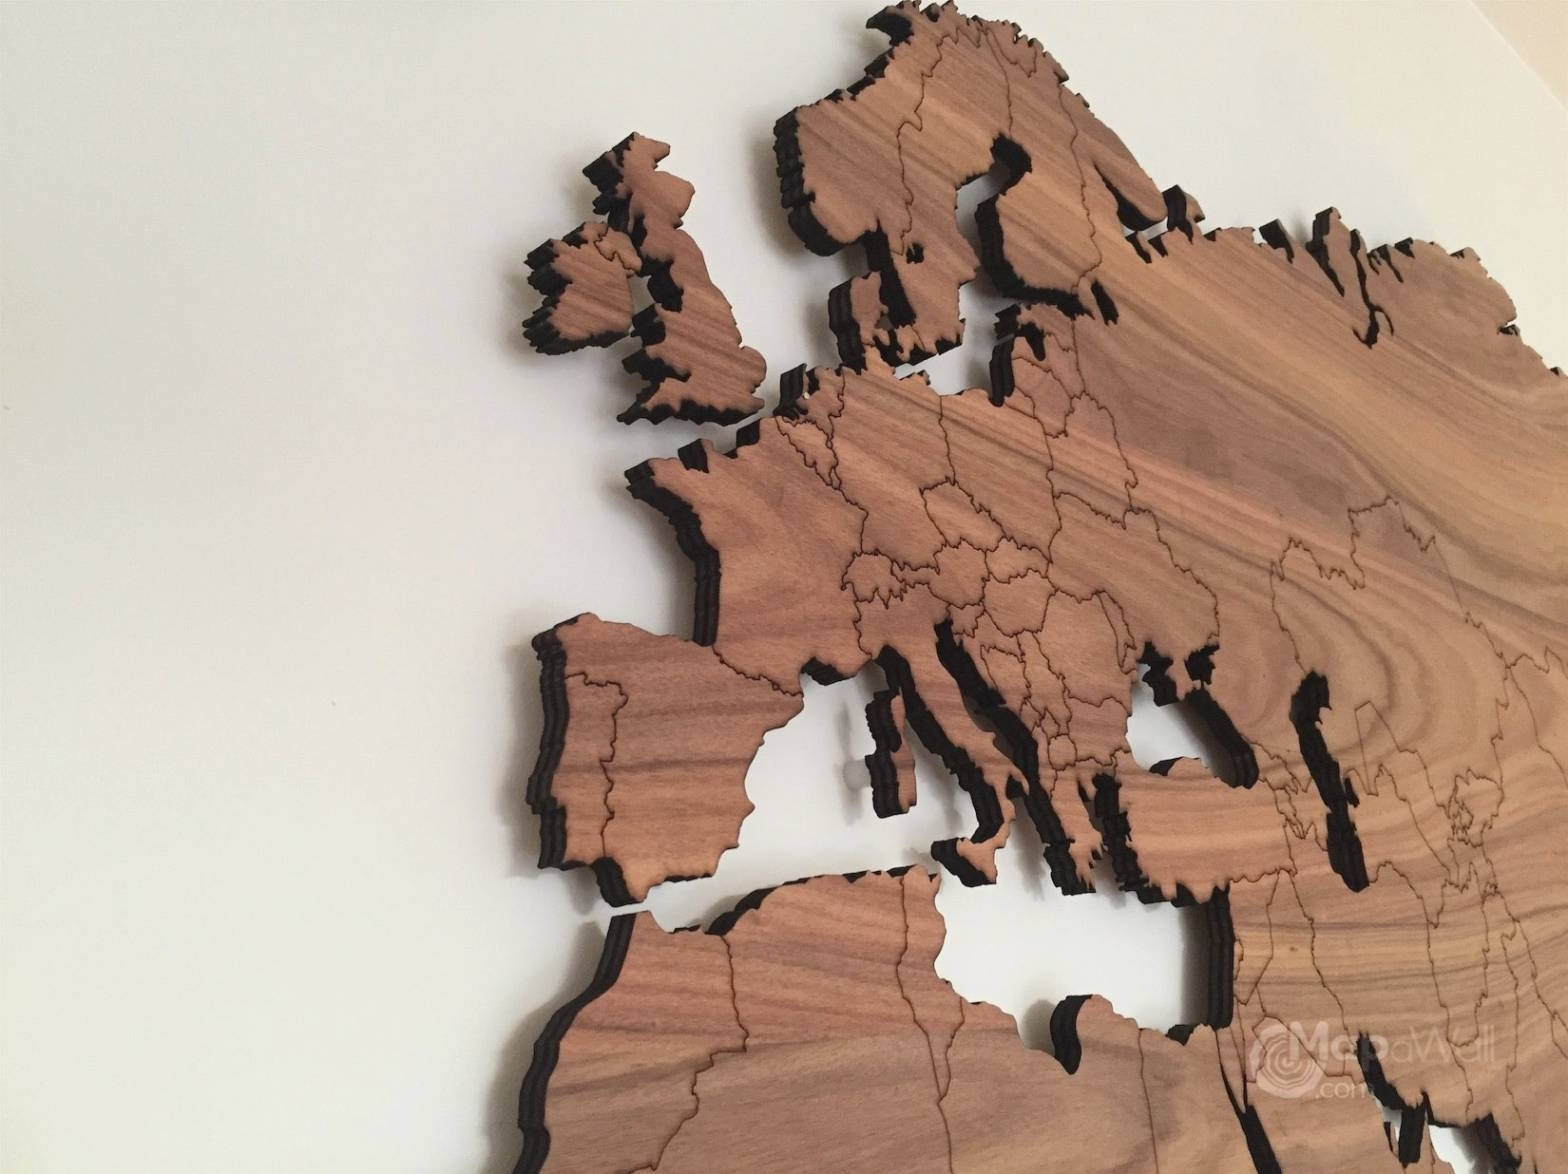 20 Ideas Of Map World Wall Art And Wooden – Furlongs With Most Recently Released Map Of The World Wall Art (Gallery 17 of 20)